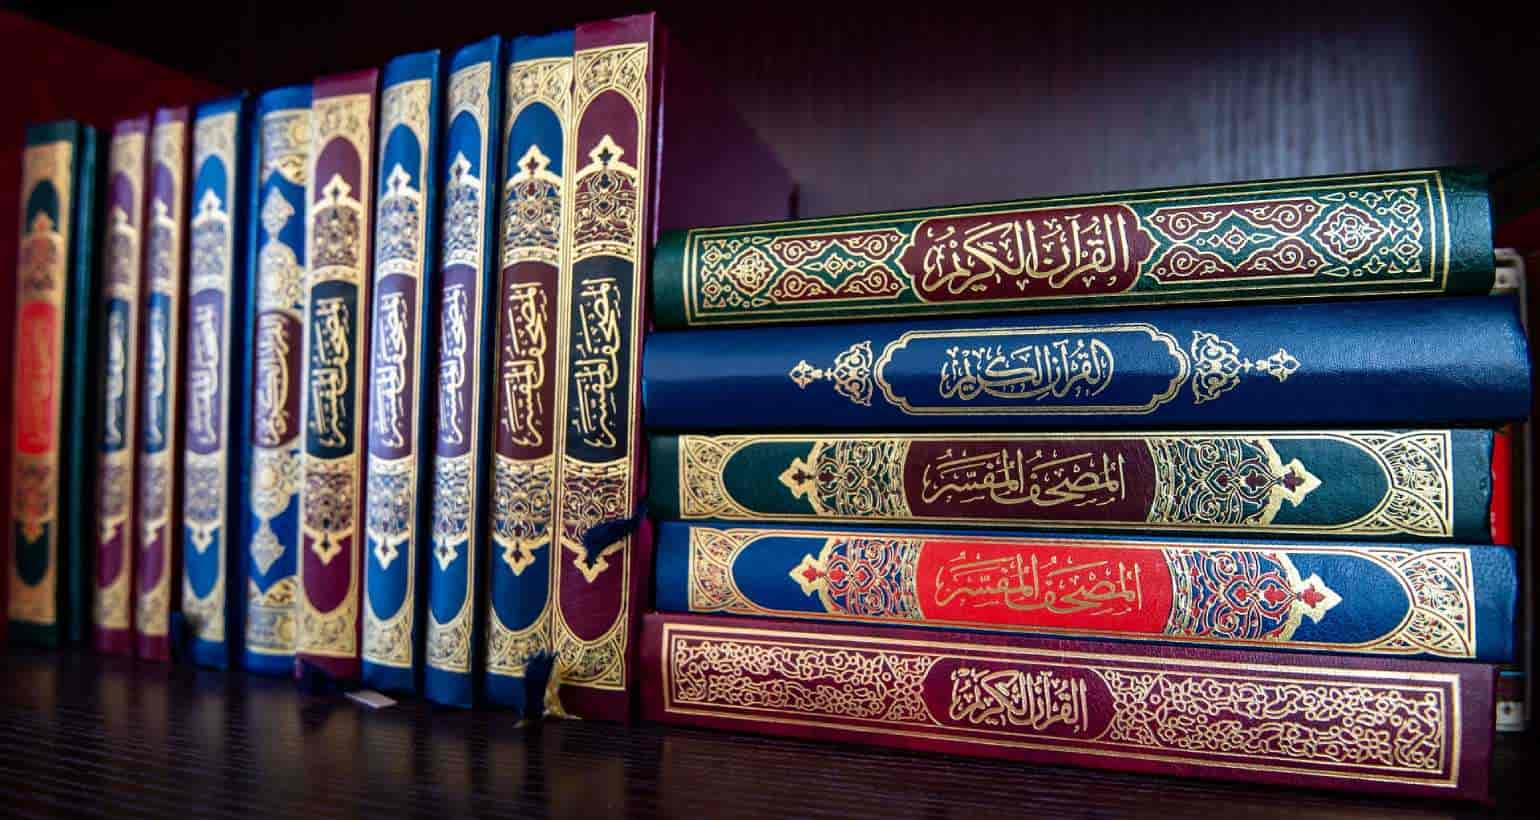 is it compulsory to read quran in arabic